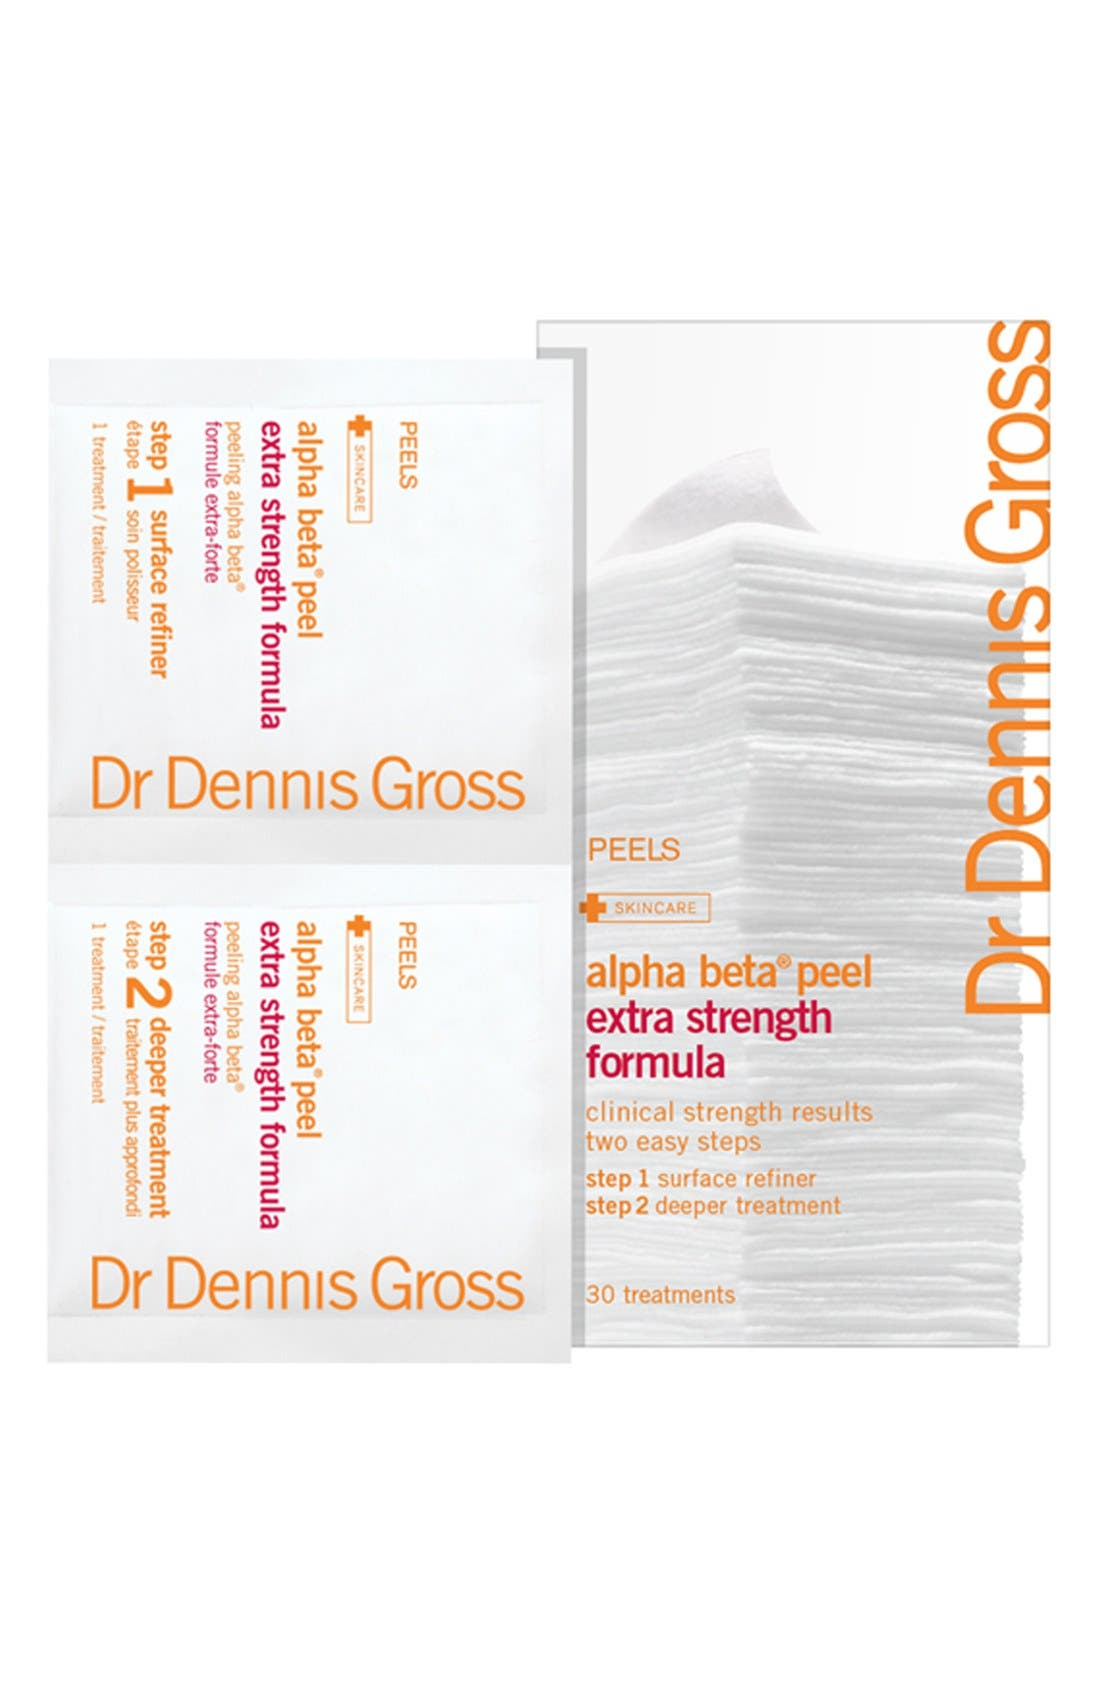 Dr. Dennis Gross Skincare Alpha Beta® Peel Extra Strength Formula - 30 Applications